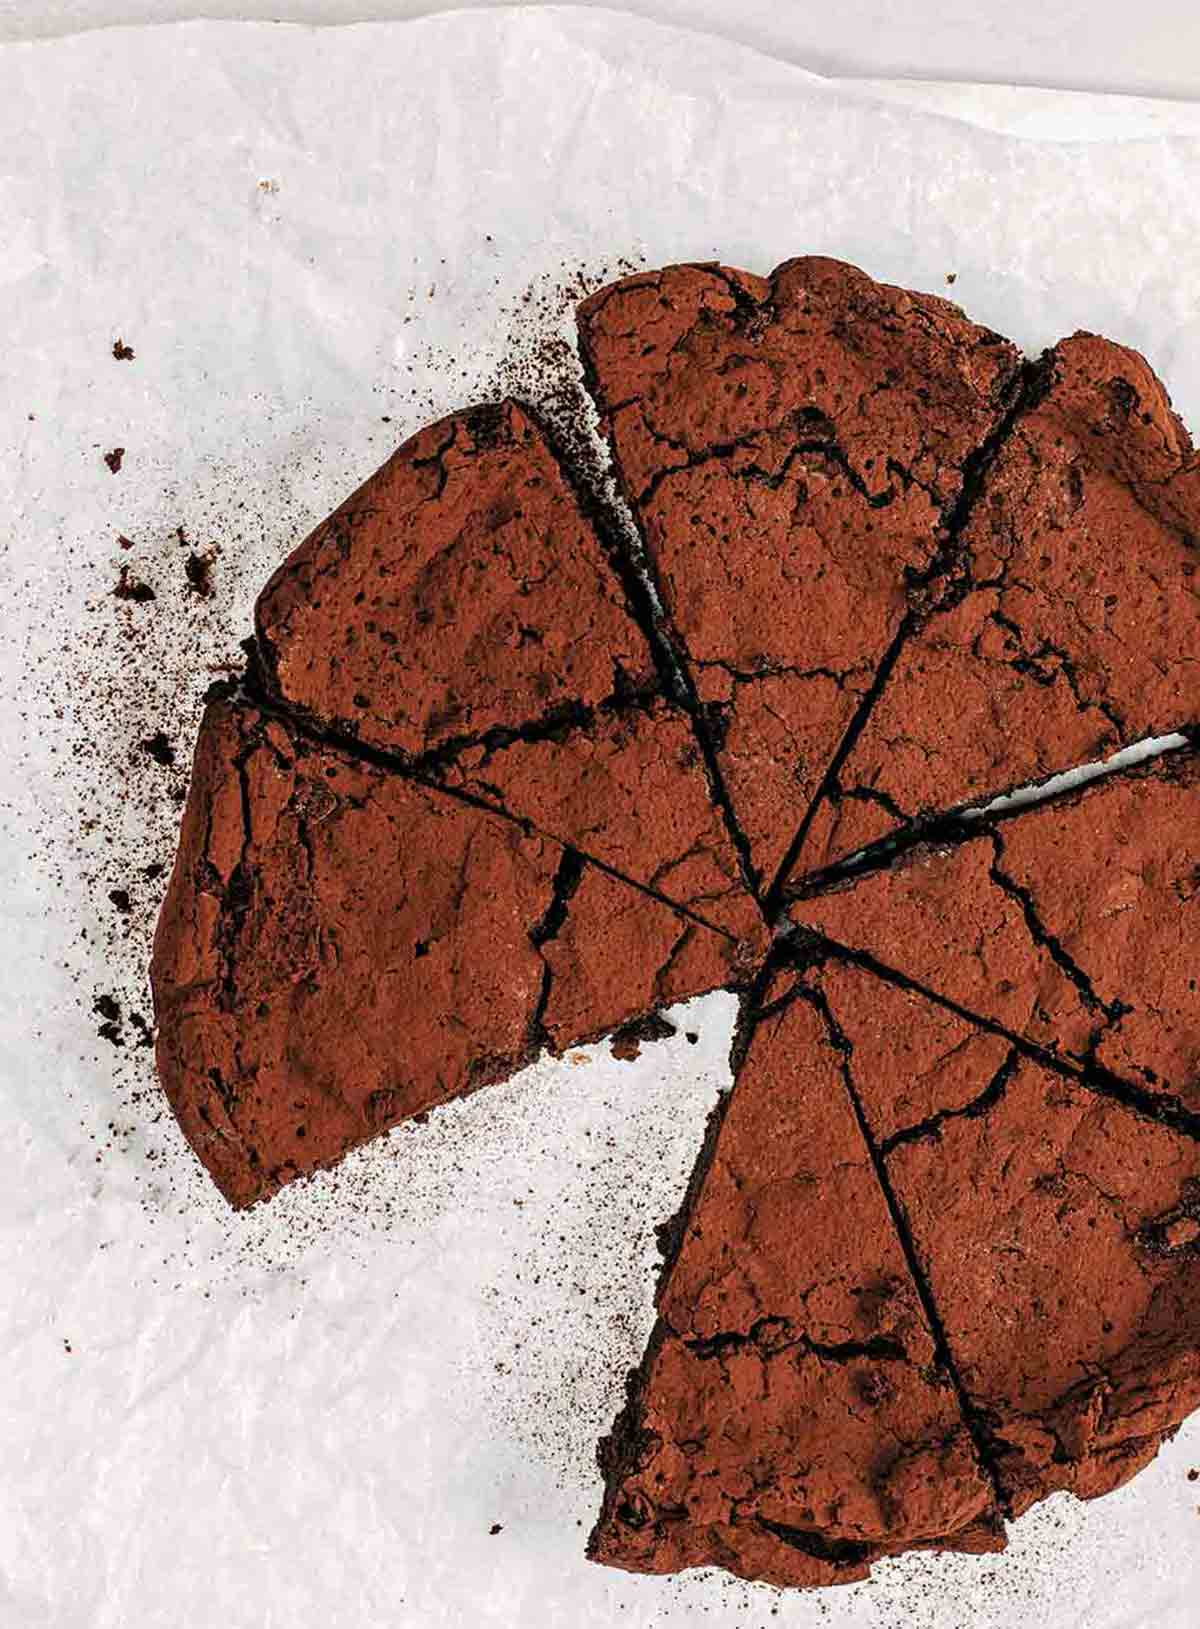 A flourless chocolate chile cake cut into 8 wedges with one slice missing on a piece of parchment paper.